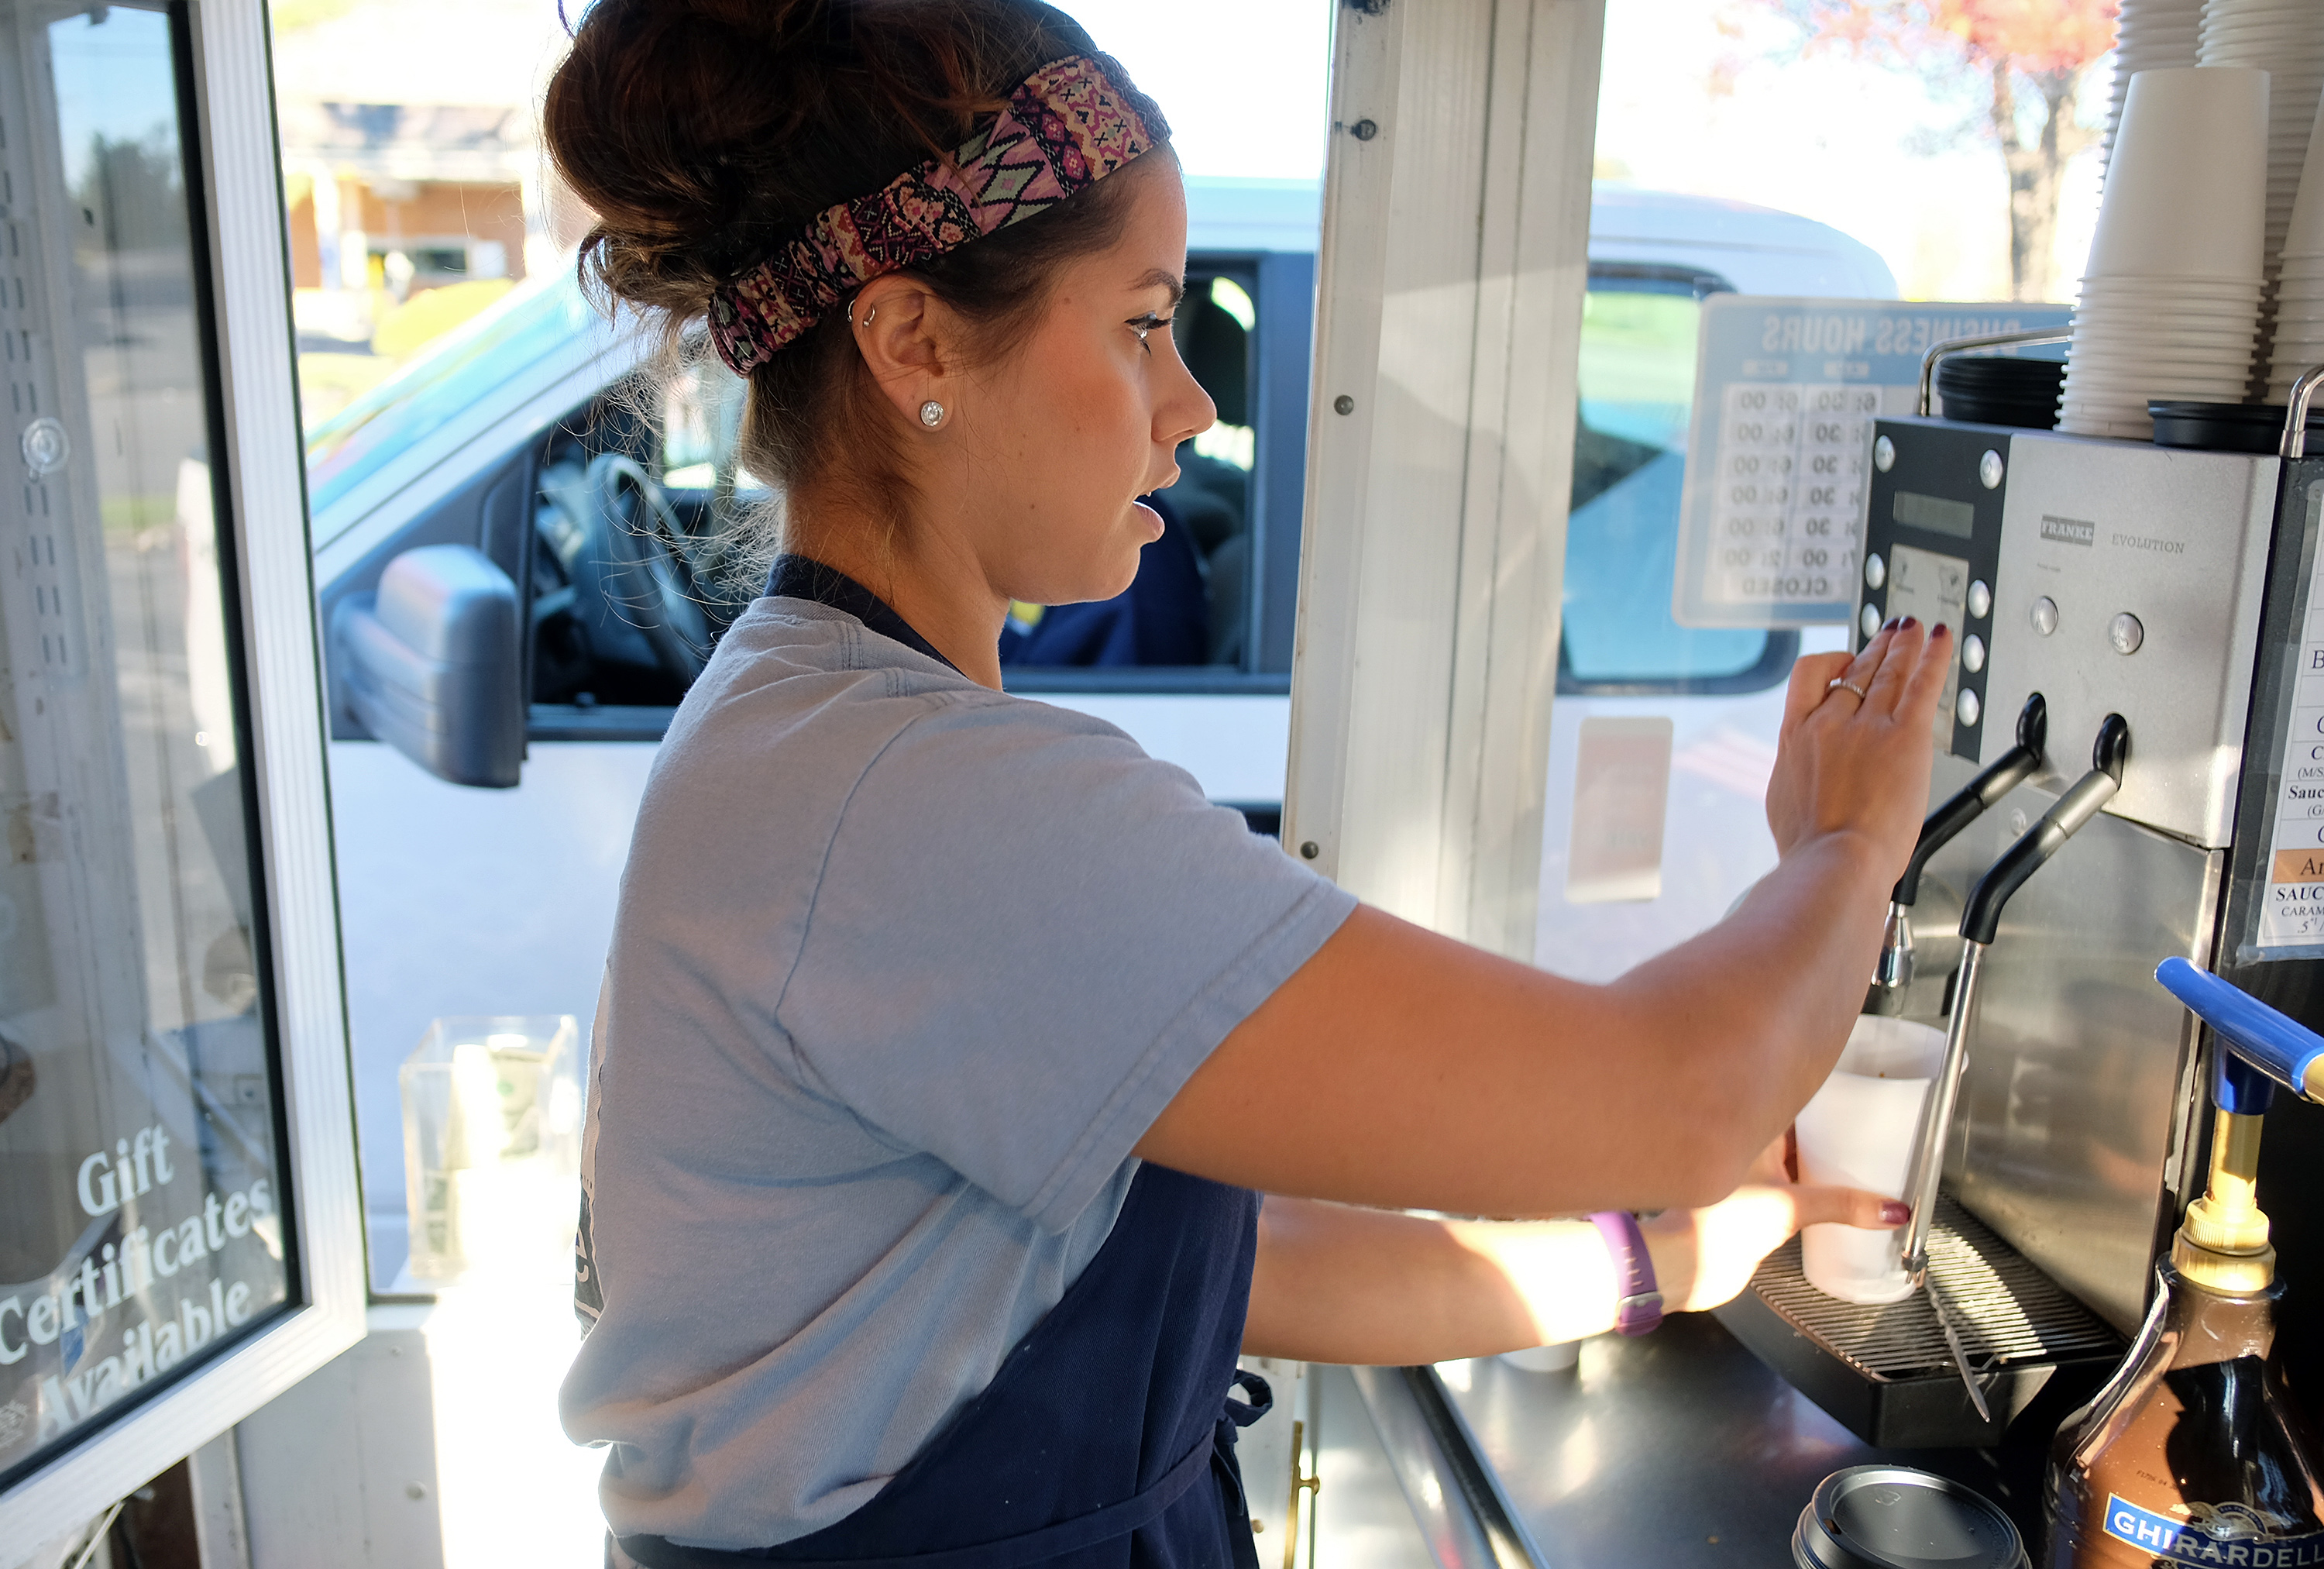 Kelsey Shreckhise, manager of Micah's Coffee helps a customer in Waynesboro, Va. Thursday Nov. 10, 2016. (Photo by Norm Shafer).